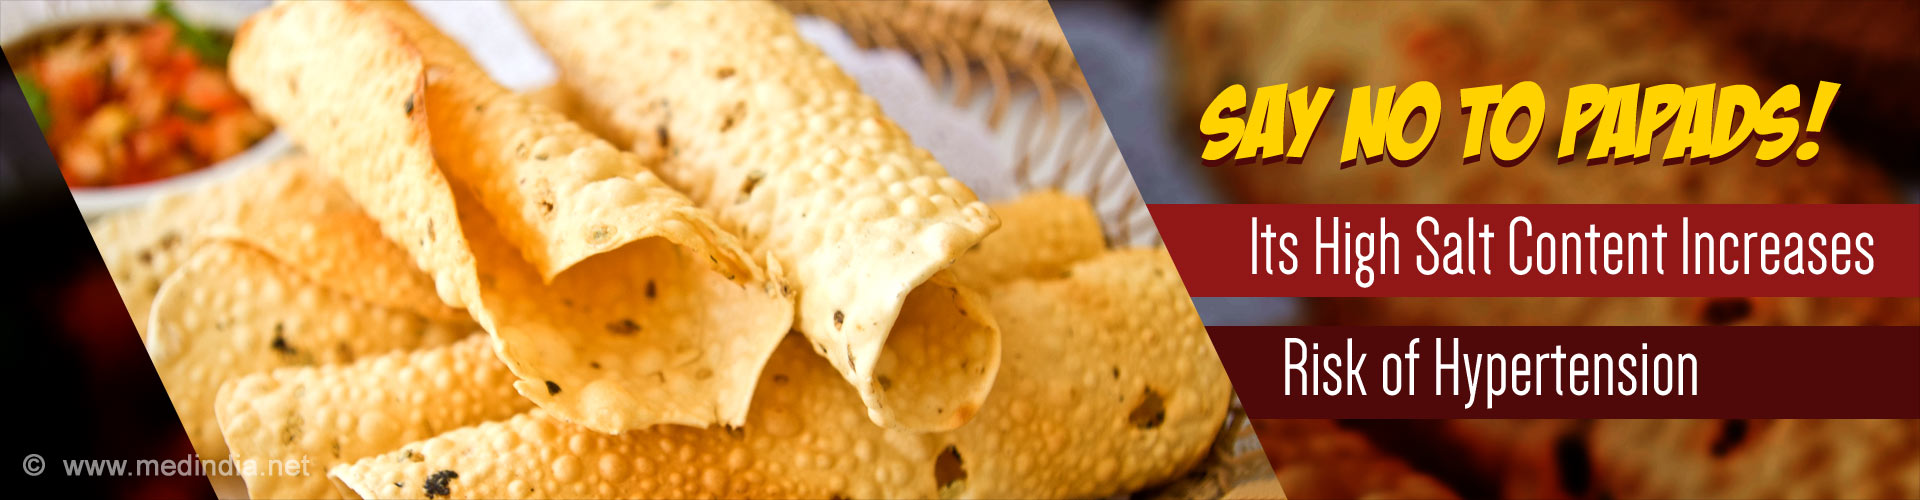 Say No to Papads! Its High Salt Content Increases Risk of Hypertension